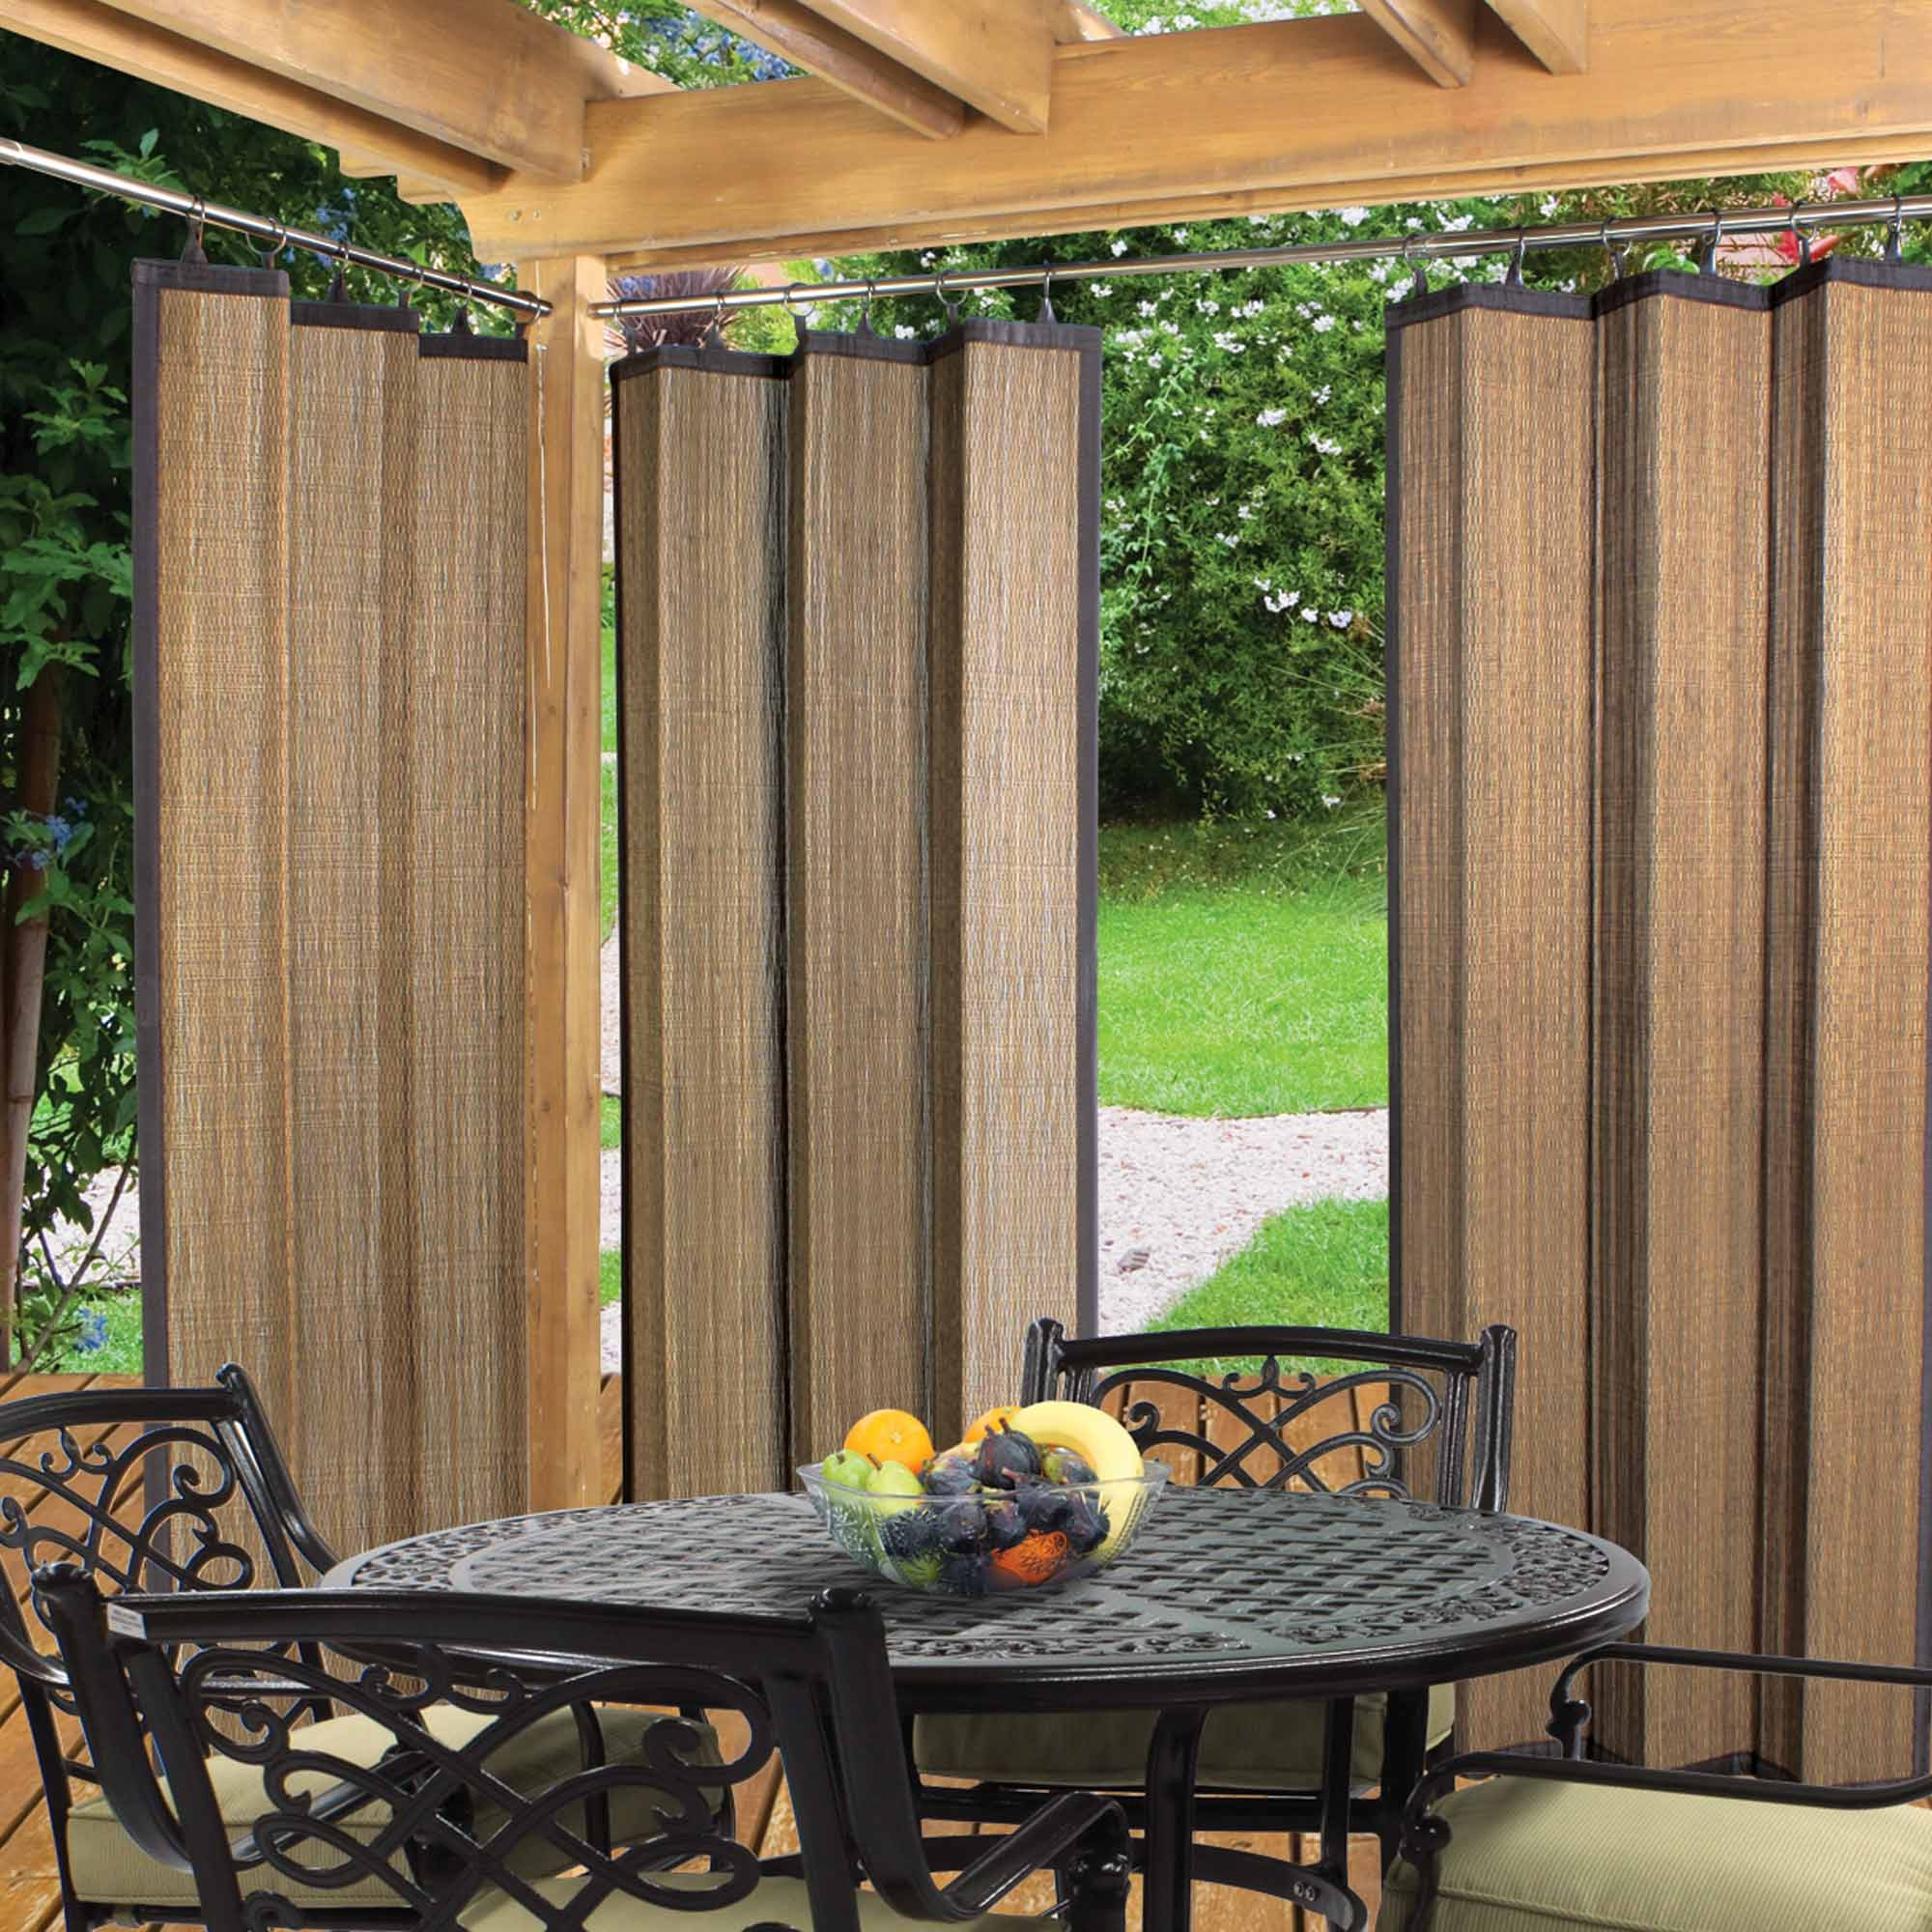 Outdoor curtains drop cloth - Diy Patio Curtains From Drop Cloths With No Sewing Tered